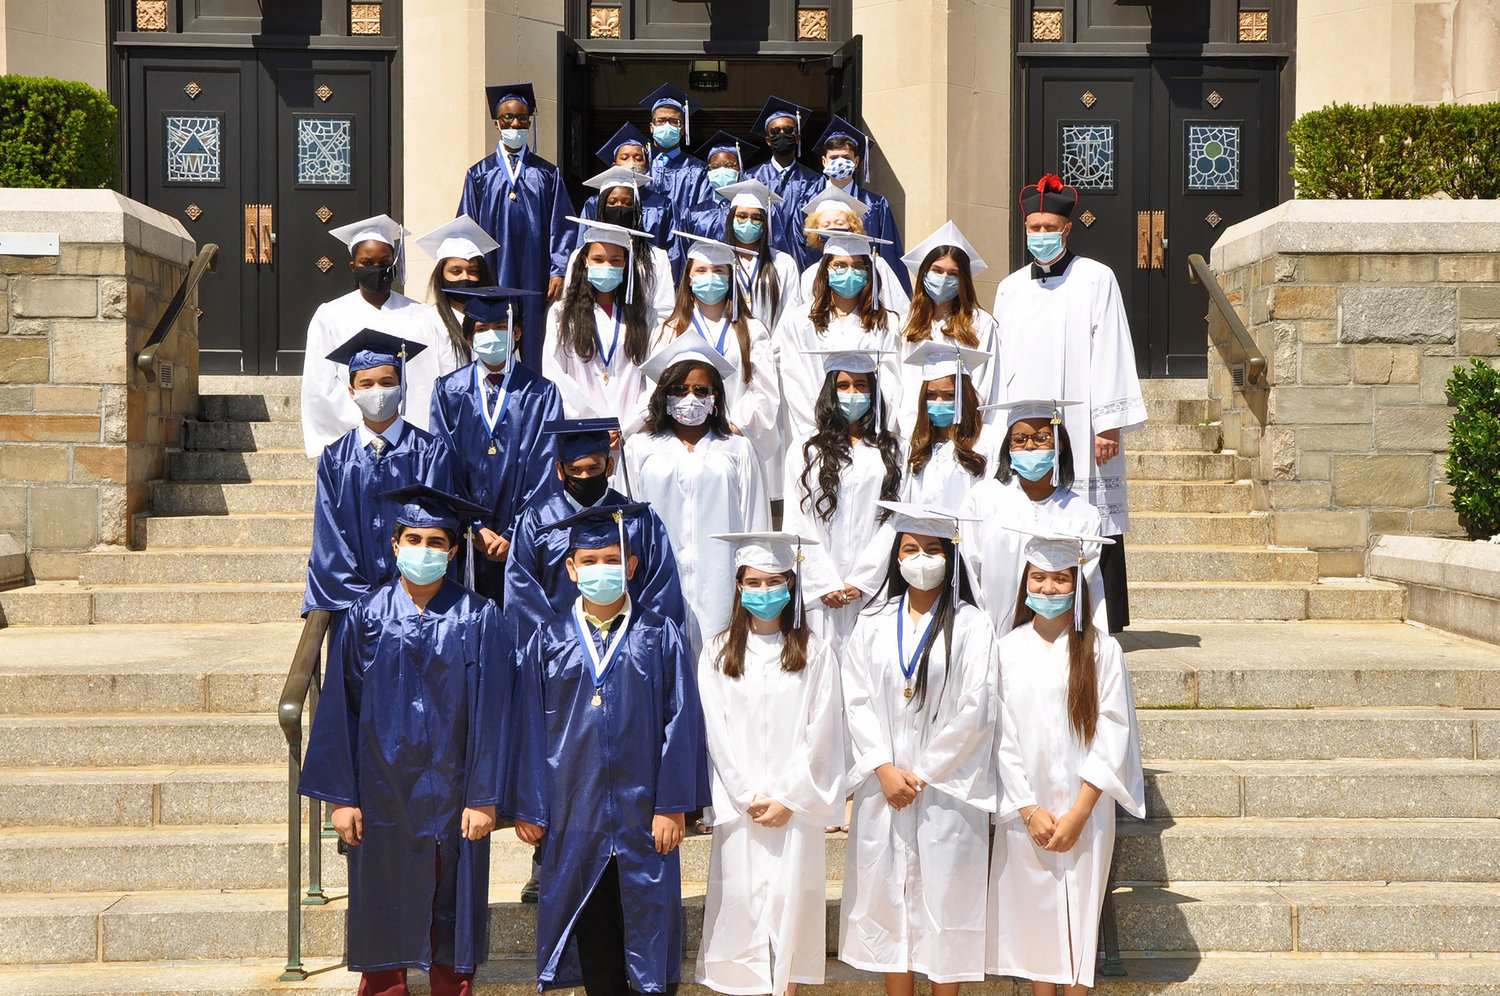 Students of the St. Christopher School class of 2020 graduated on June 13.